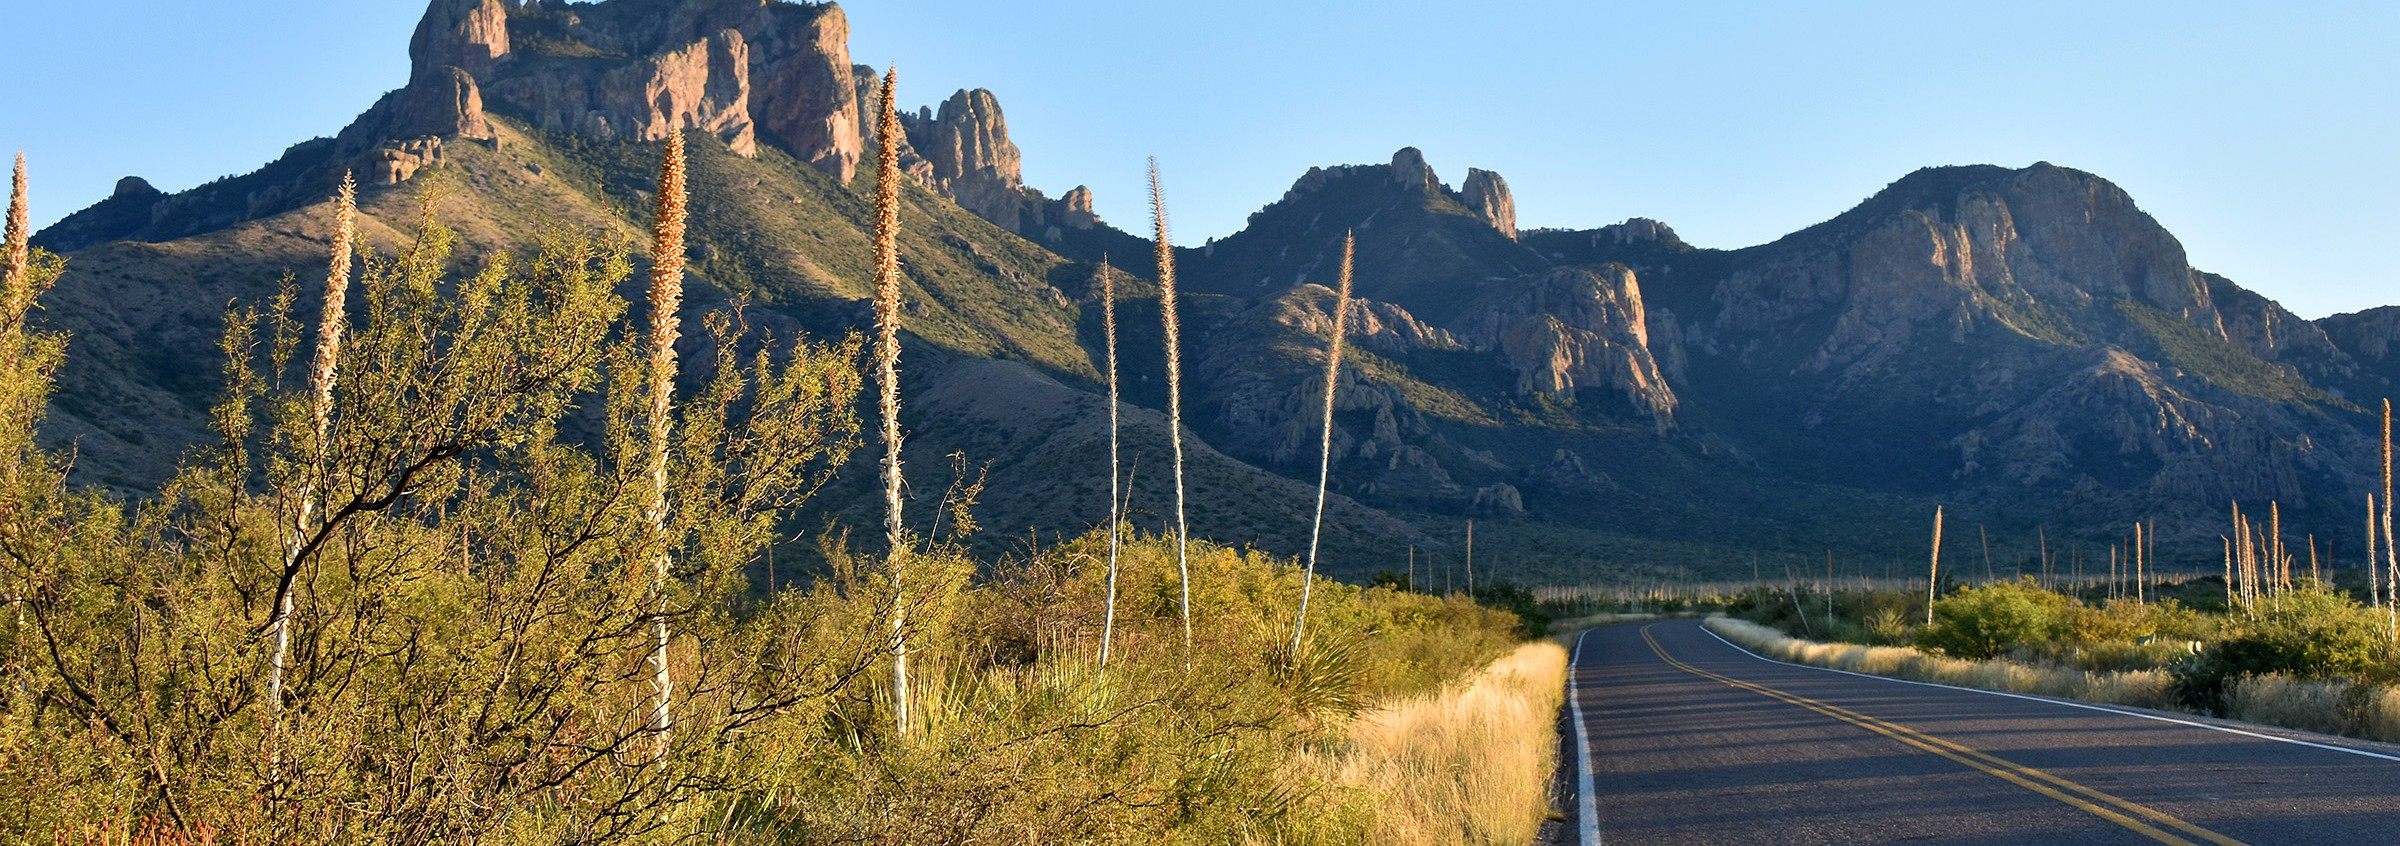 cropped-sunset-chisos-road-web11.jpg